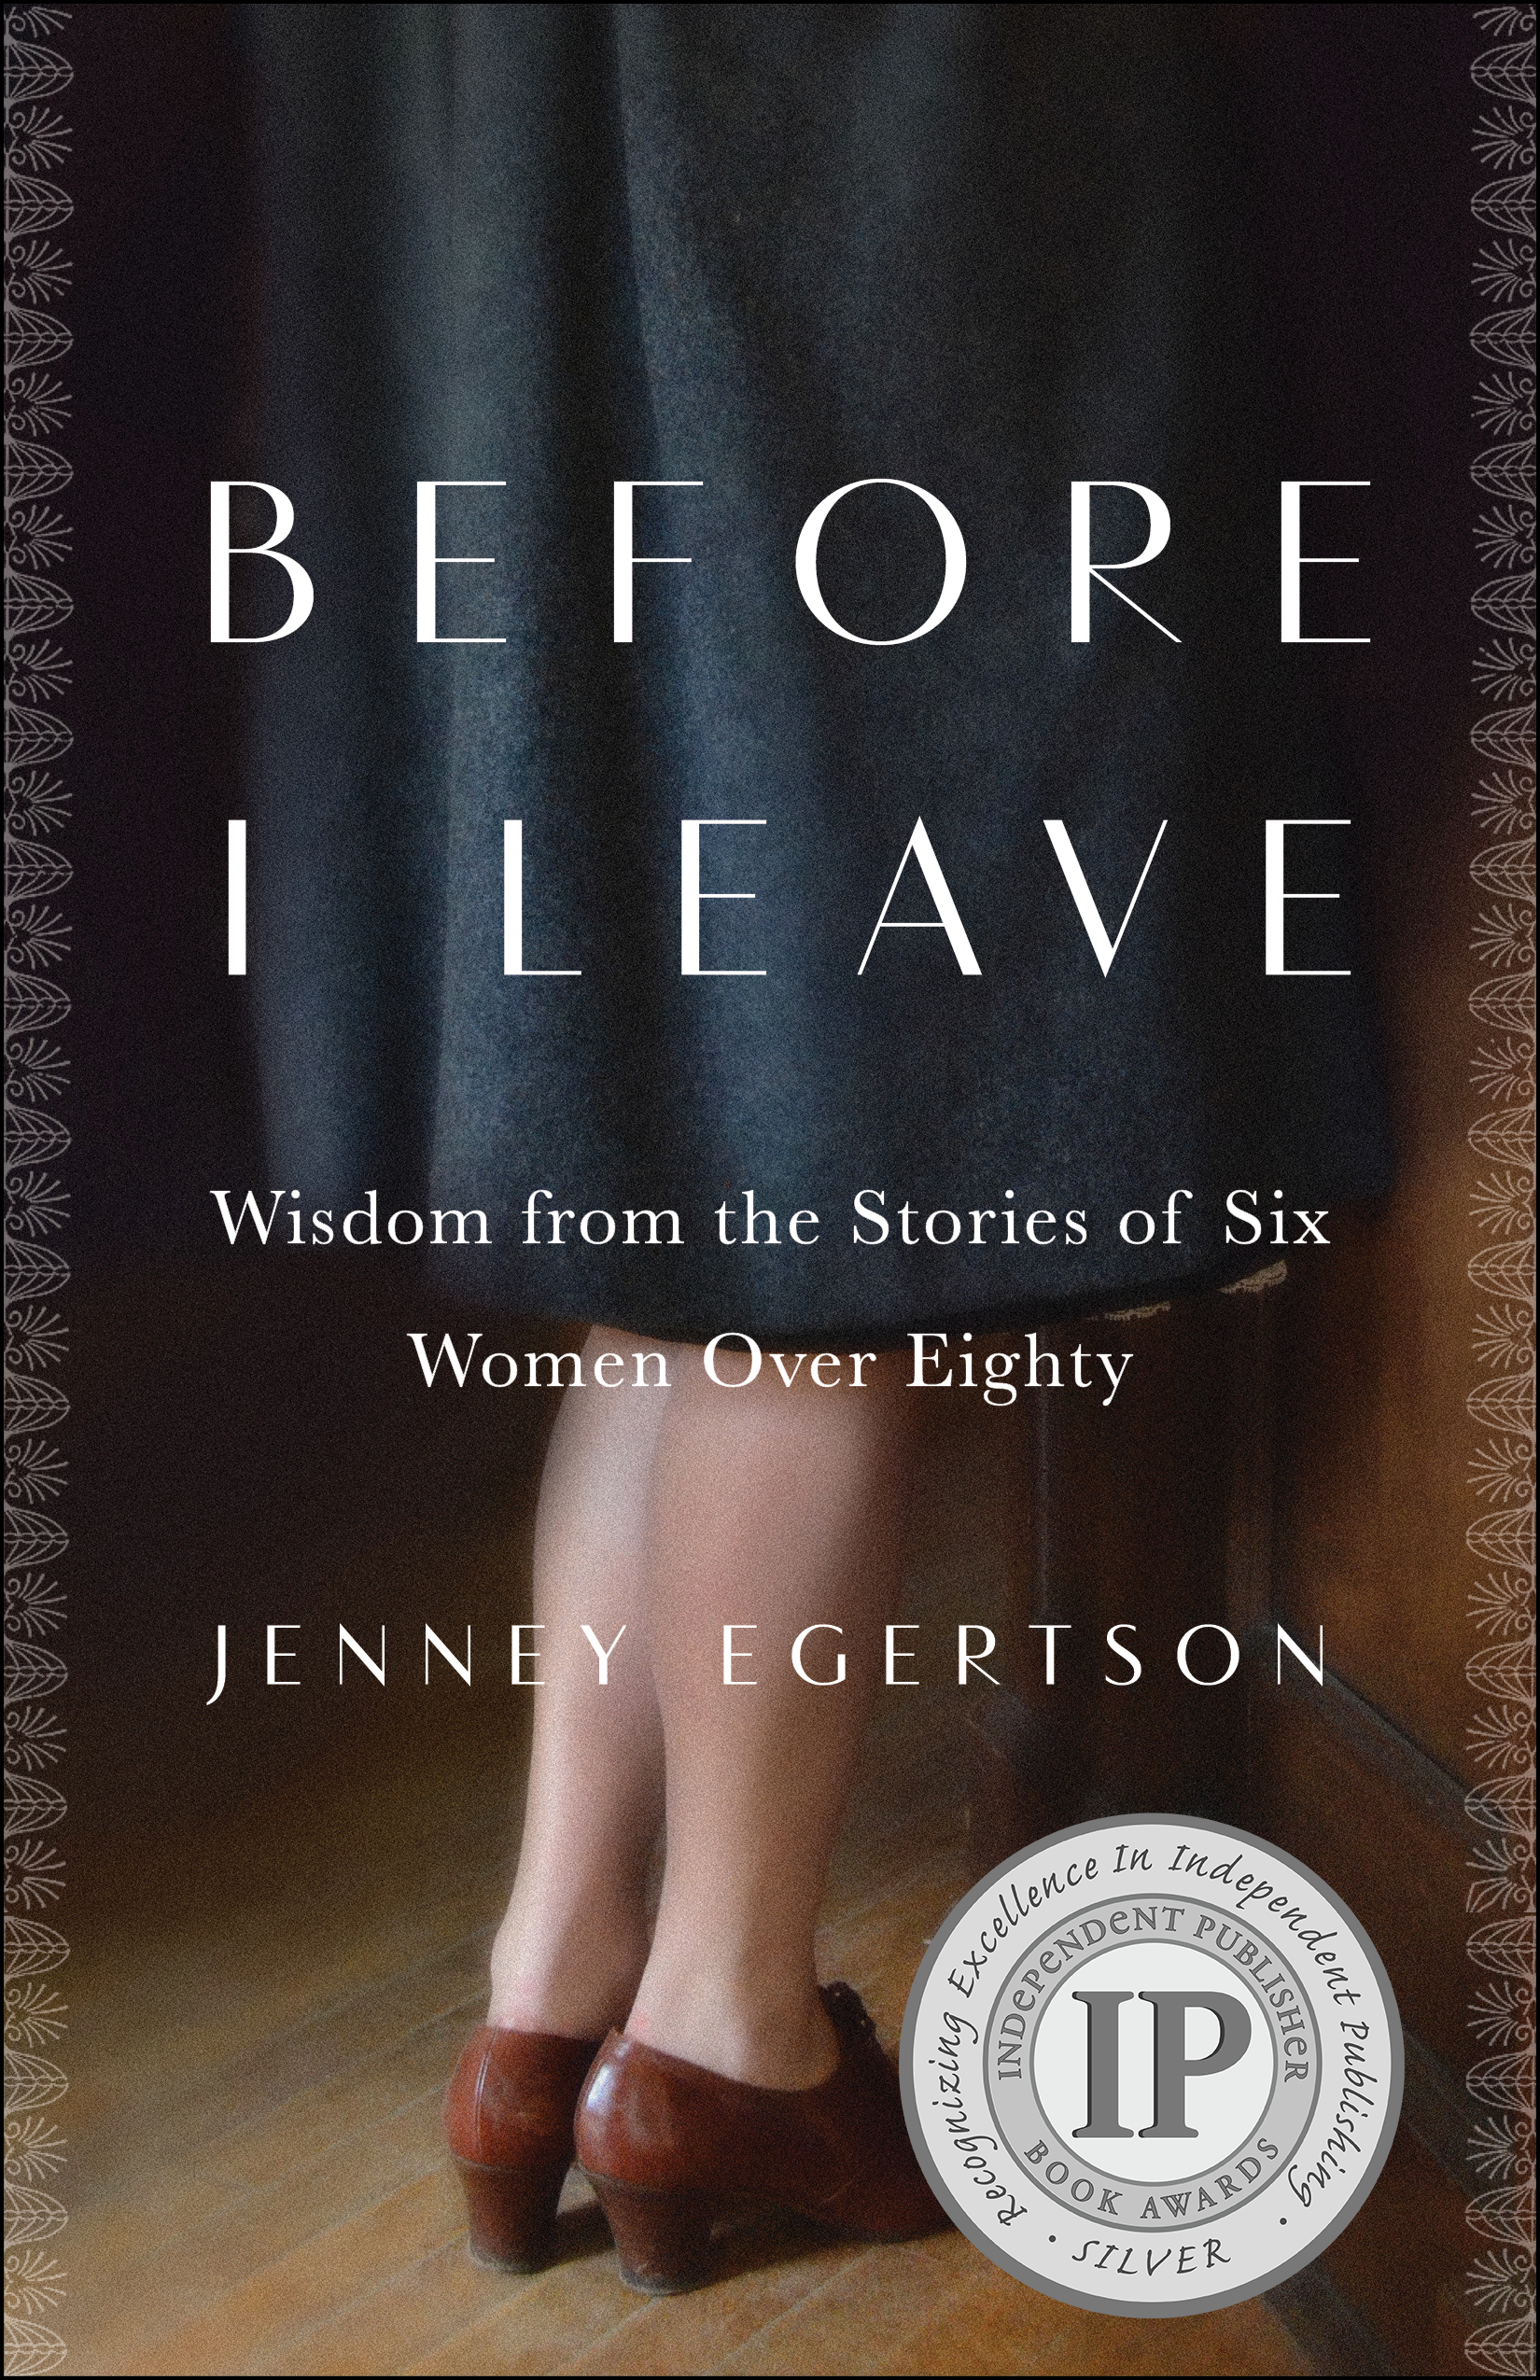 About Before I Leave - In July of 2000, Jenney Egertson met 80-year-old Maude Kelly. The following day, Jenney had an idea that felt more like a command: give Maude and a diverse group of women over the age of 80 a voice by writing a book to capture their stories and advice.